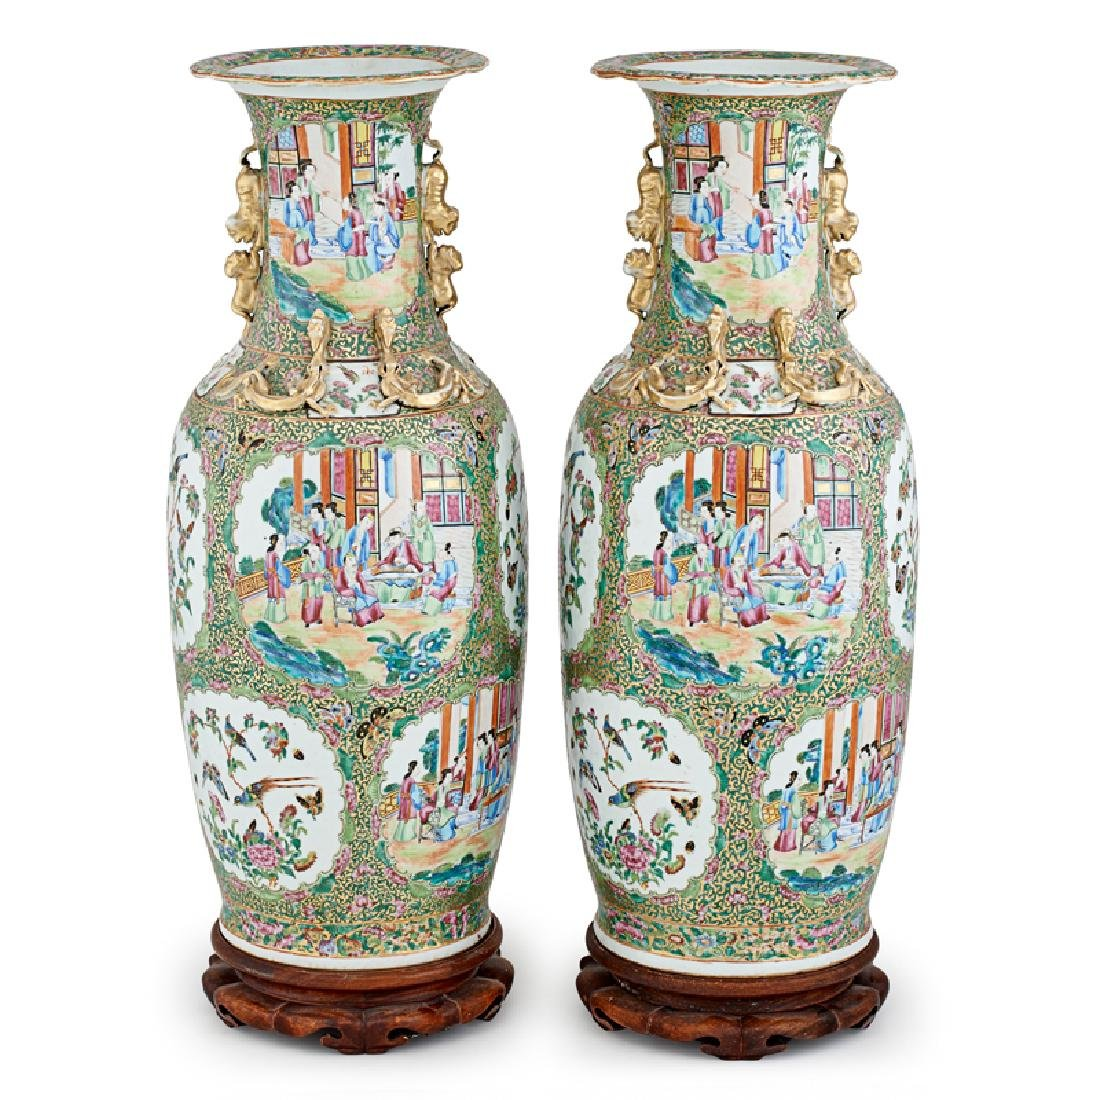 PAIR OF CHINESE EXPORT FAMILLE ROSE FLOOR VASES